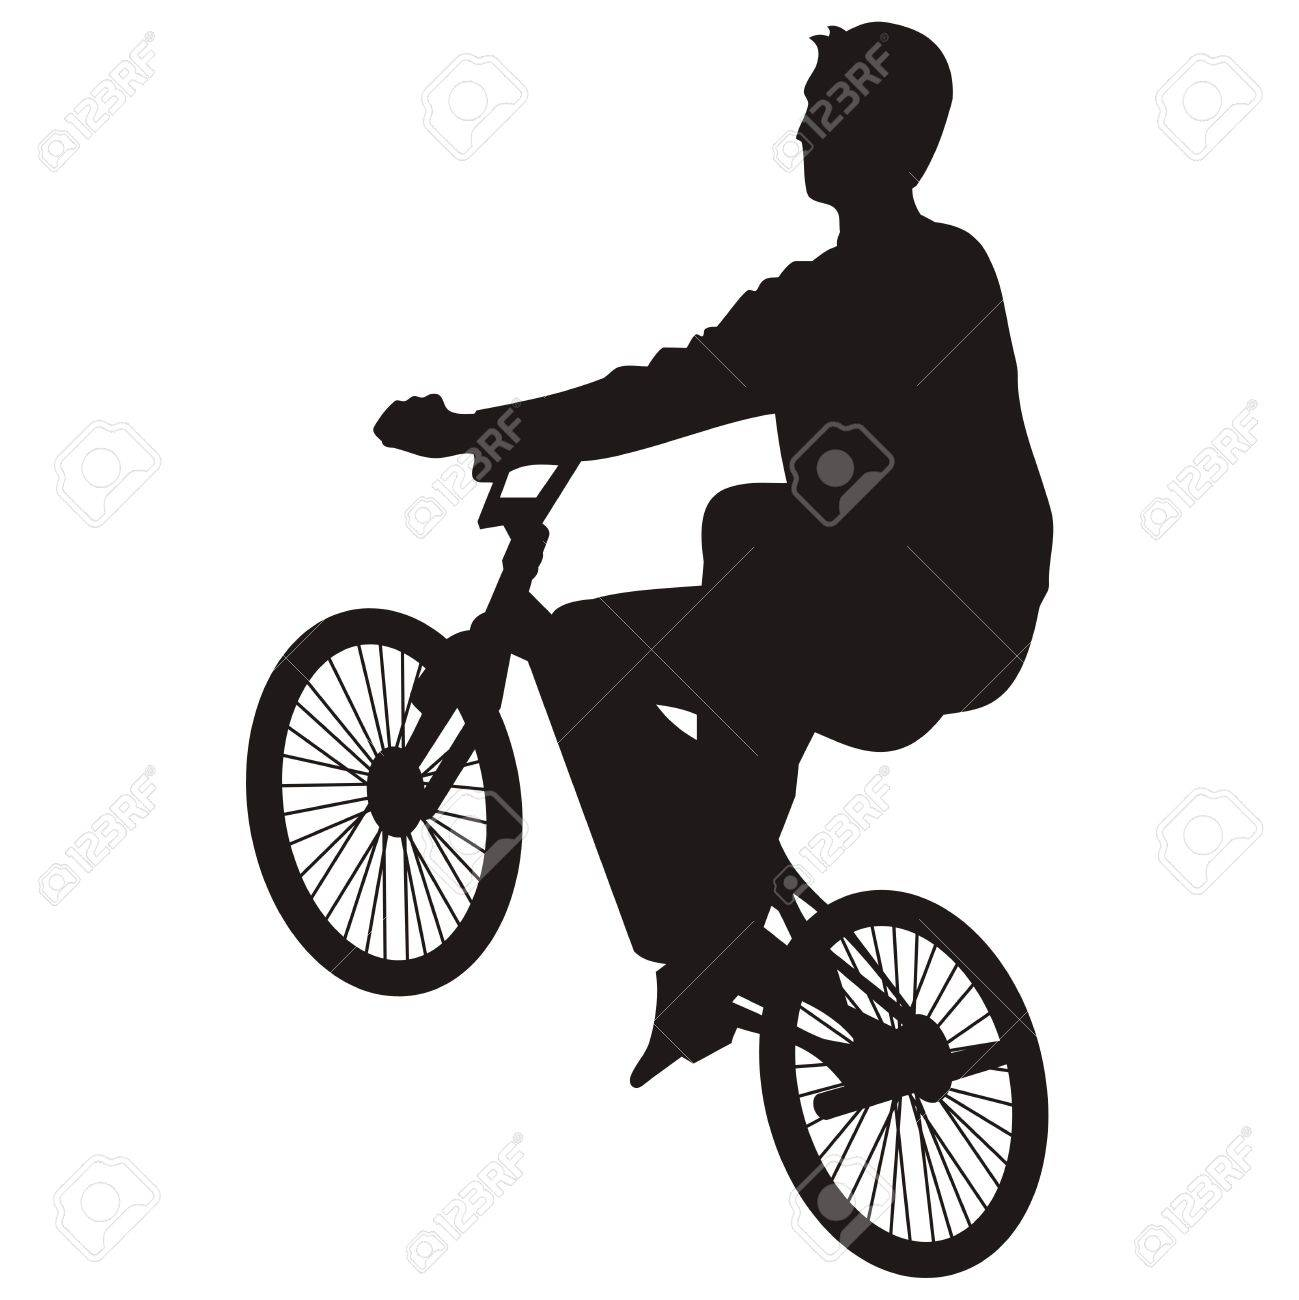 Bicycle rider silhouette isolated on white - 2705536